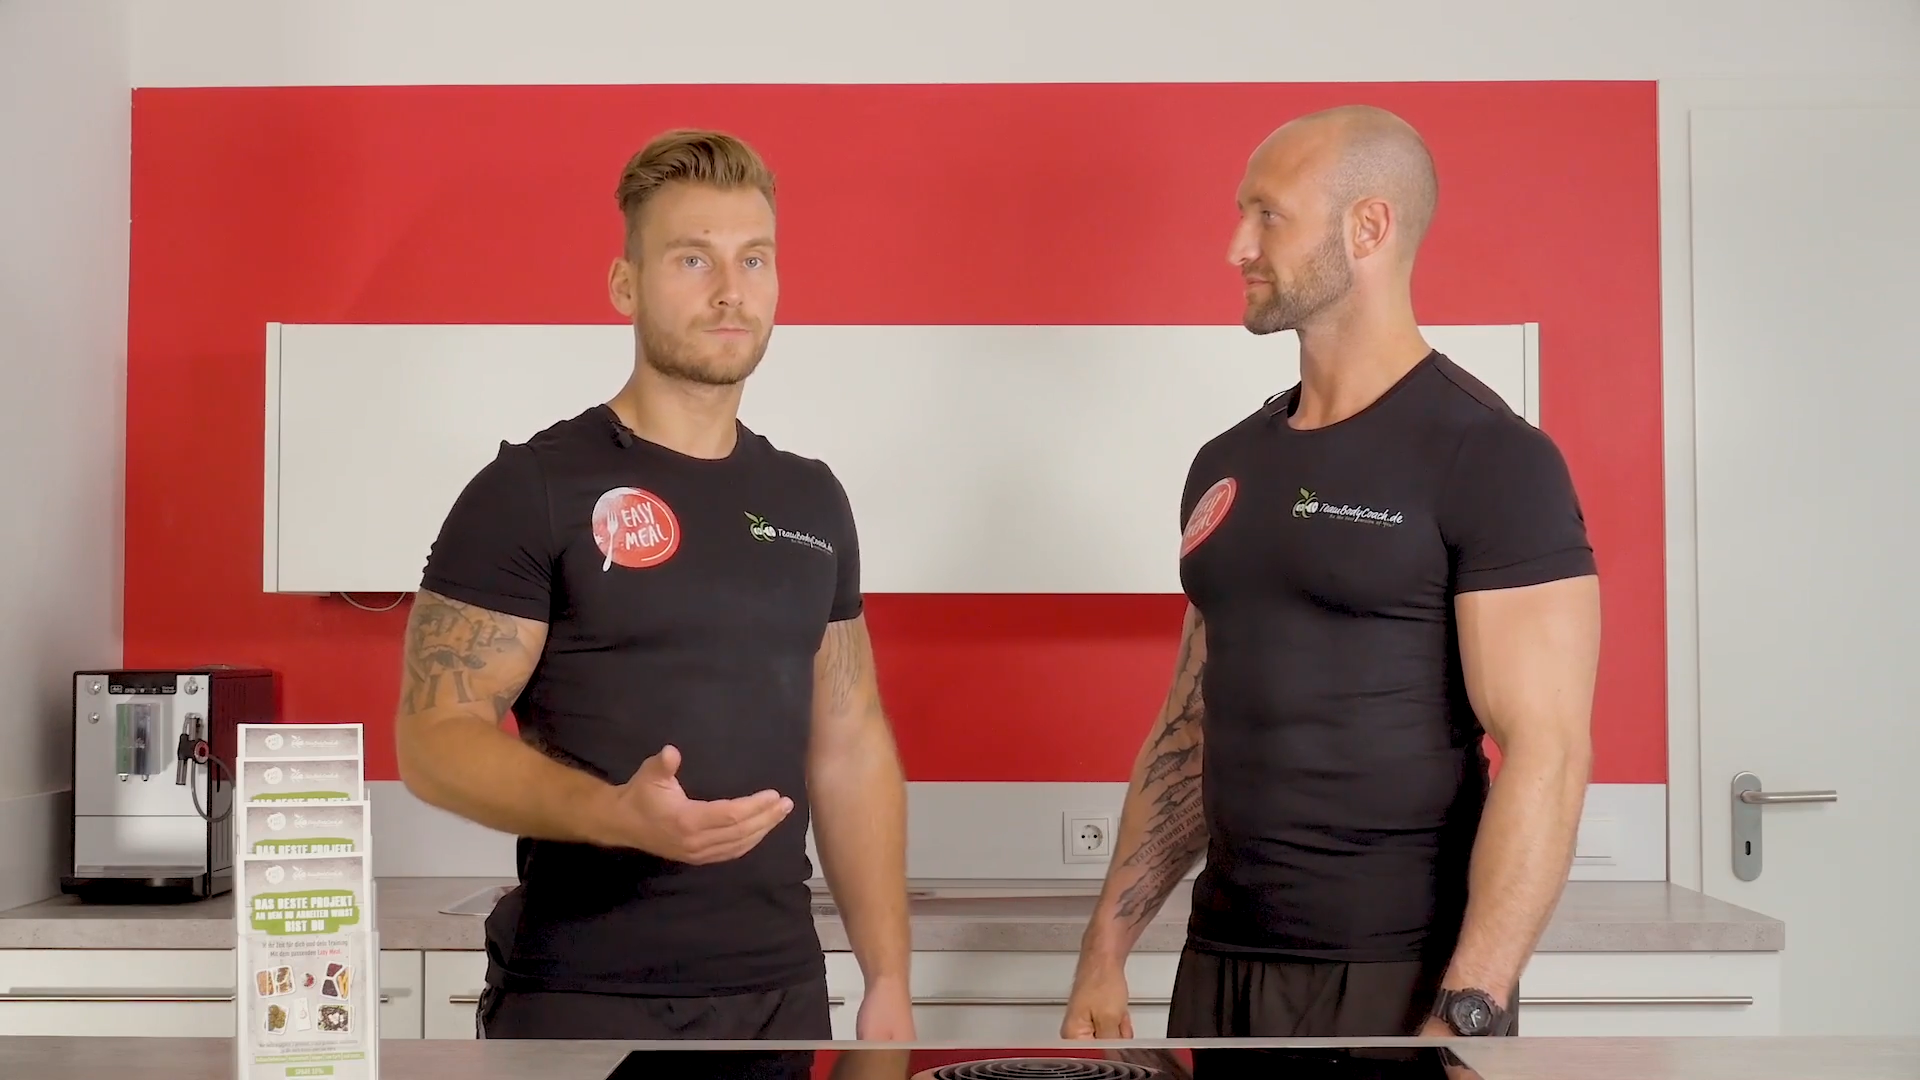 Personal Fitness Trainer Hamburg - TeamBodyCoach - TeamBodyCoach meets Easymeal 2